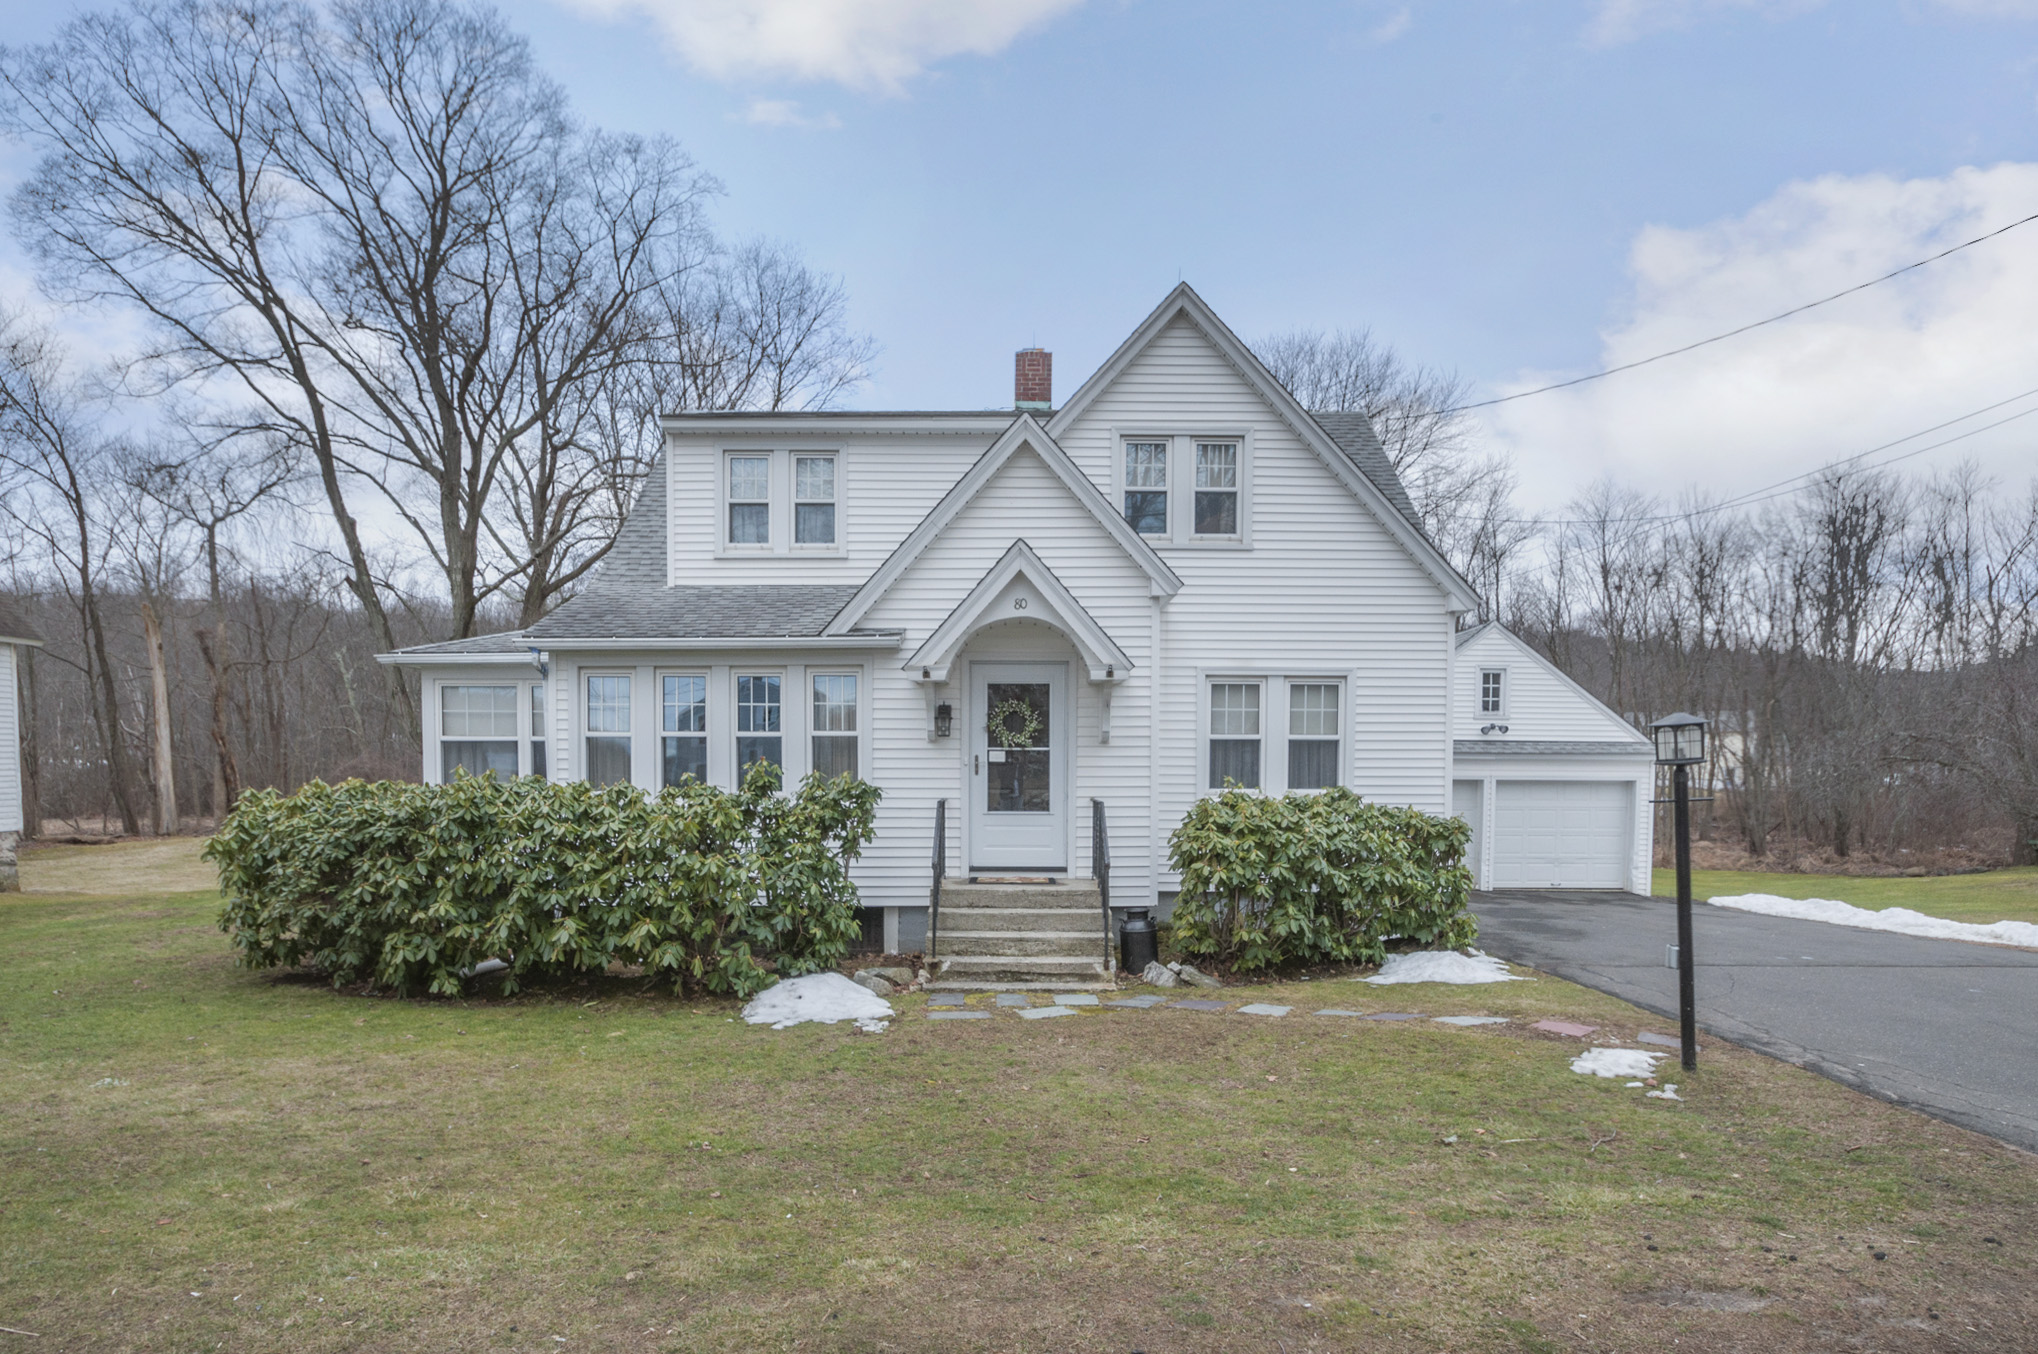 Single Family Home for Sale at Classic Styled Cape Colonial 80 Great Plain Road Danbury, Connecticut, 06811 United States